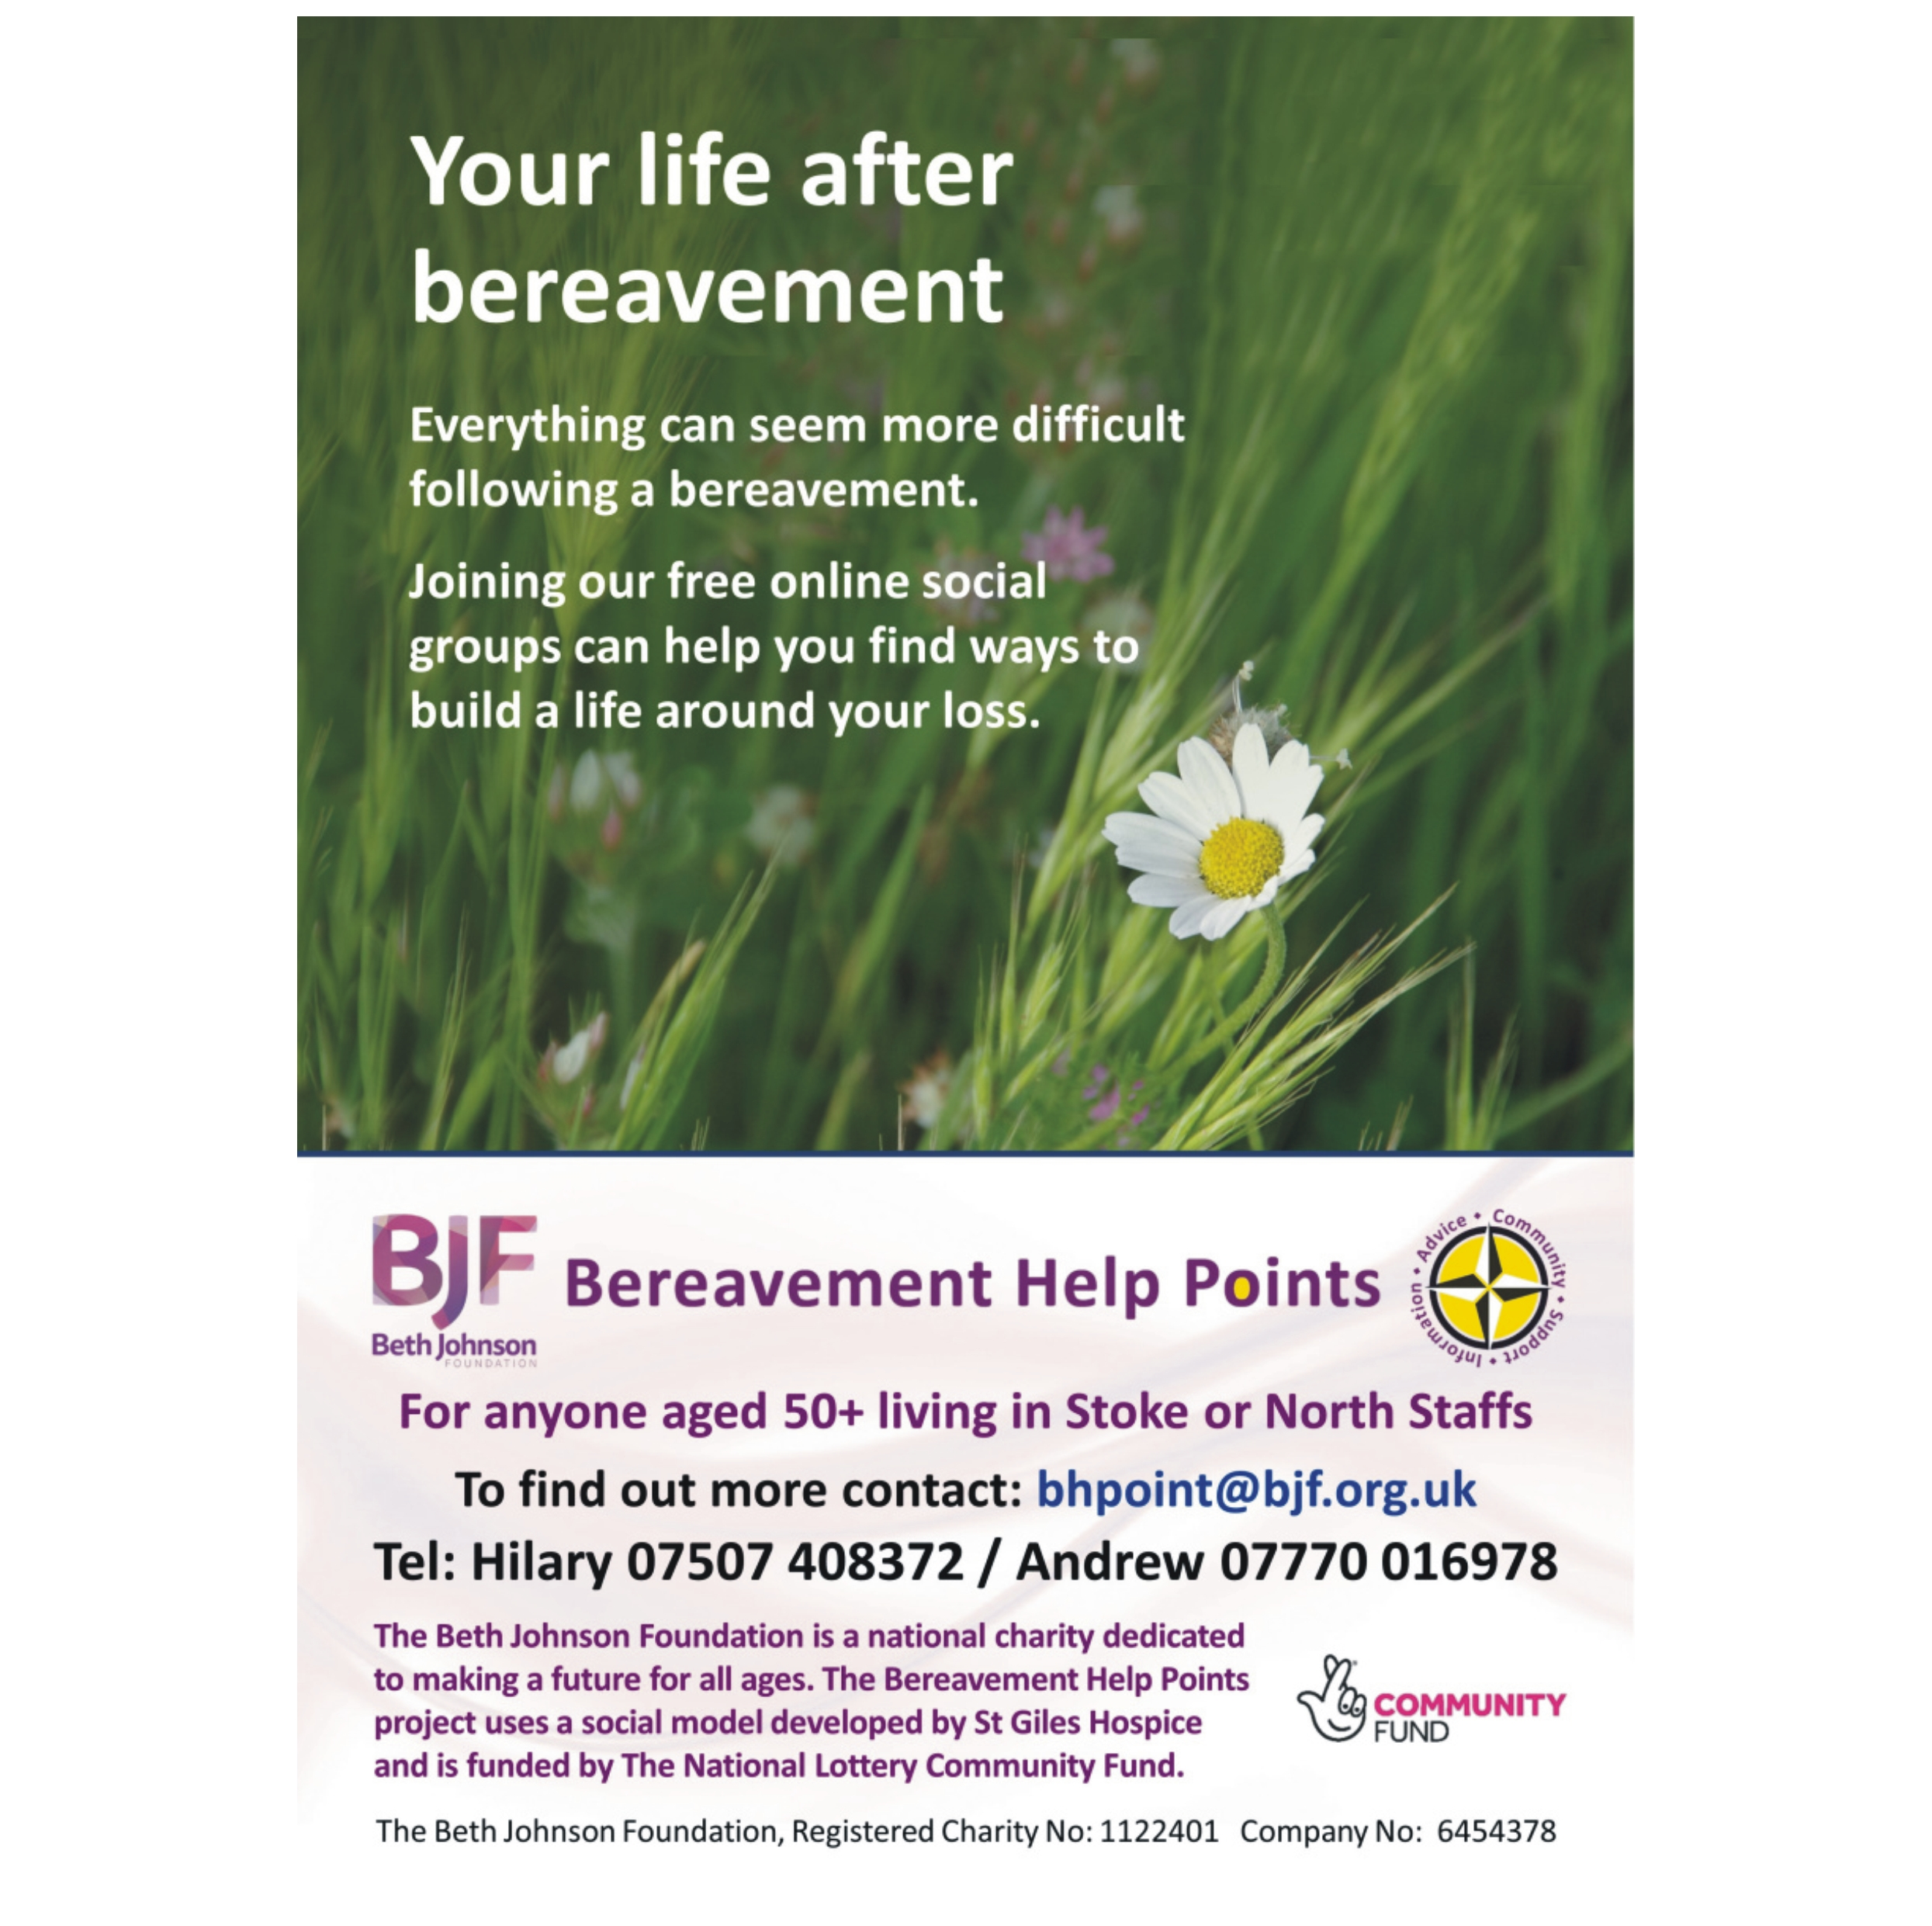 Your Life After Bereavement